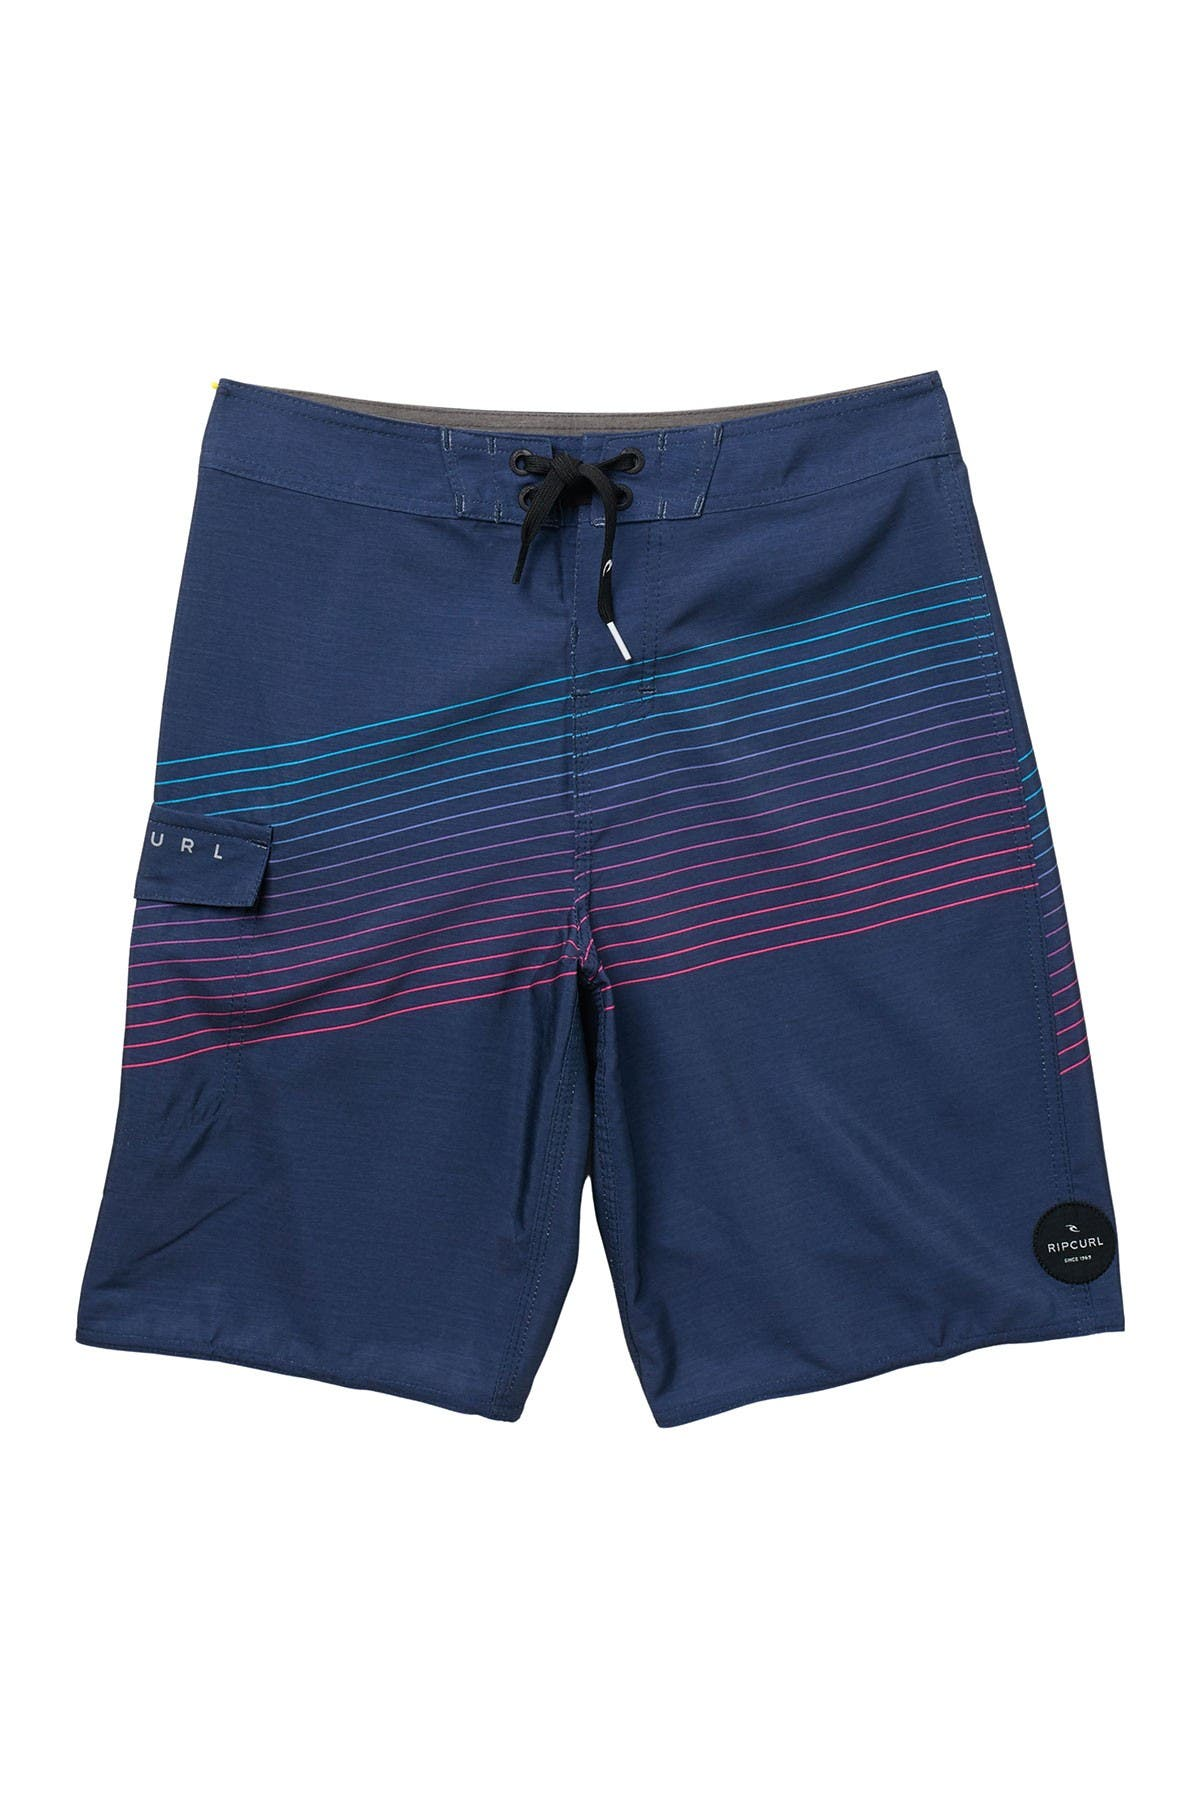 Image of Rip Curl Invert Board Shorts